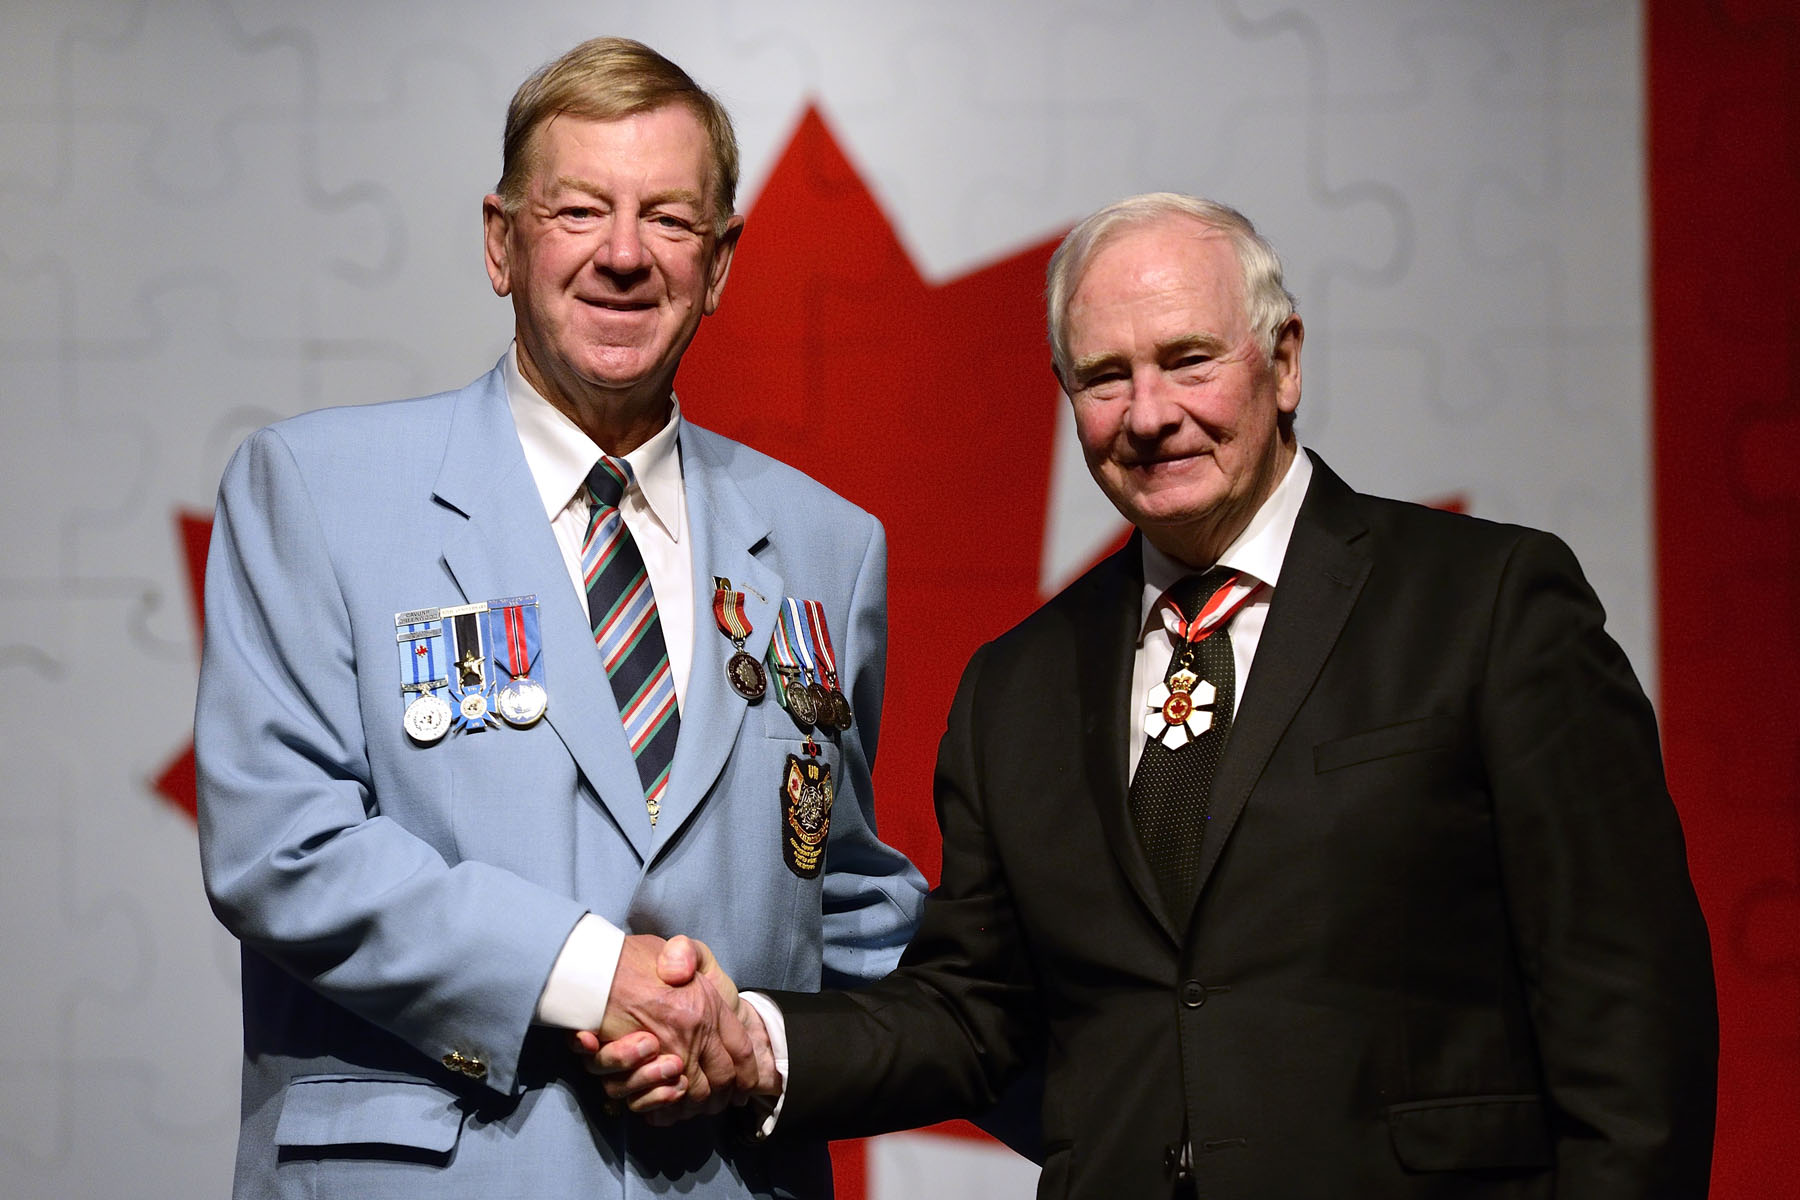 The Sovereign's Medal for Volunteers was presented to Ronald Griffis for dedicating his time to improving the lives of his fellow veterans and their families through the Canadian Association of Veterans in United Nations Peacekeeping. A former national president, he has established regional and provincial chapters across Canada to support veterans at the national, provincial and local levels.